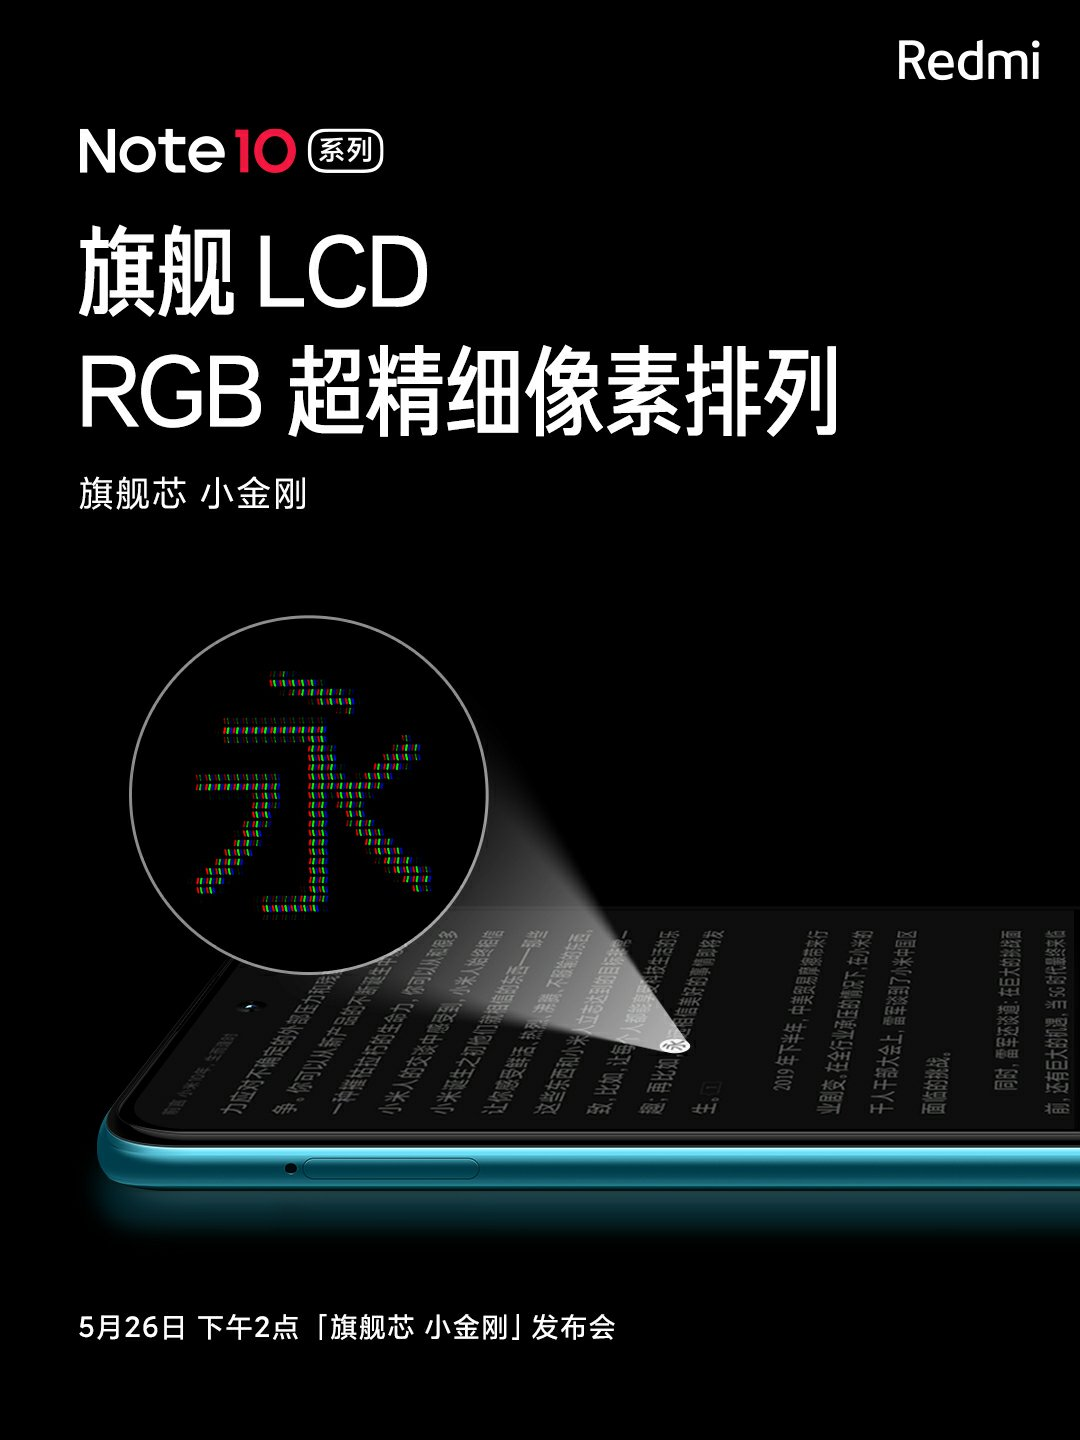 Redmi Note10 Series Display Features RGB